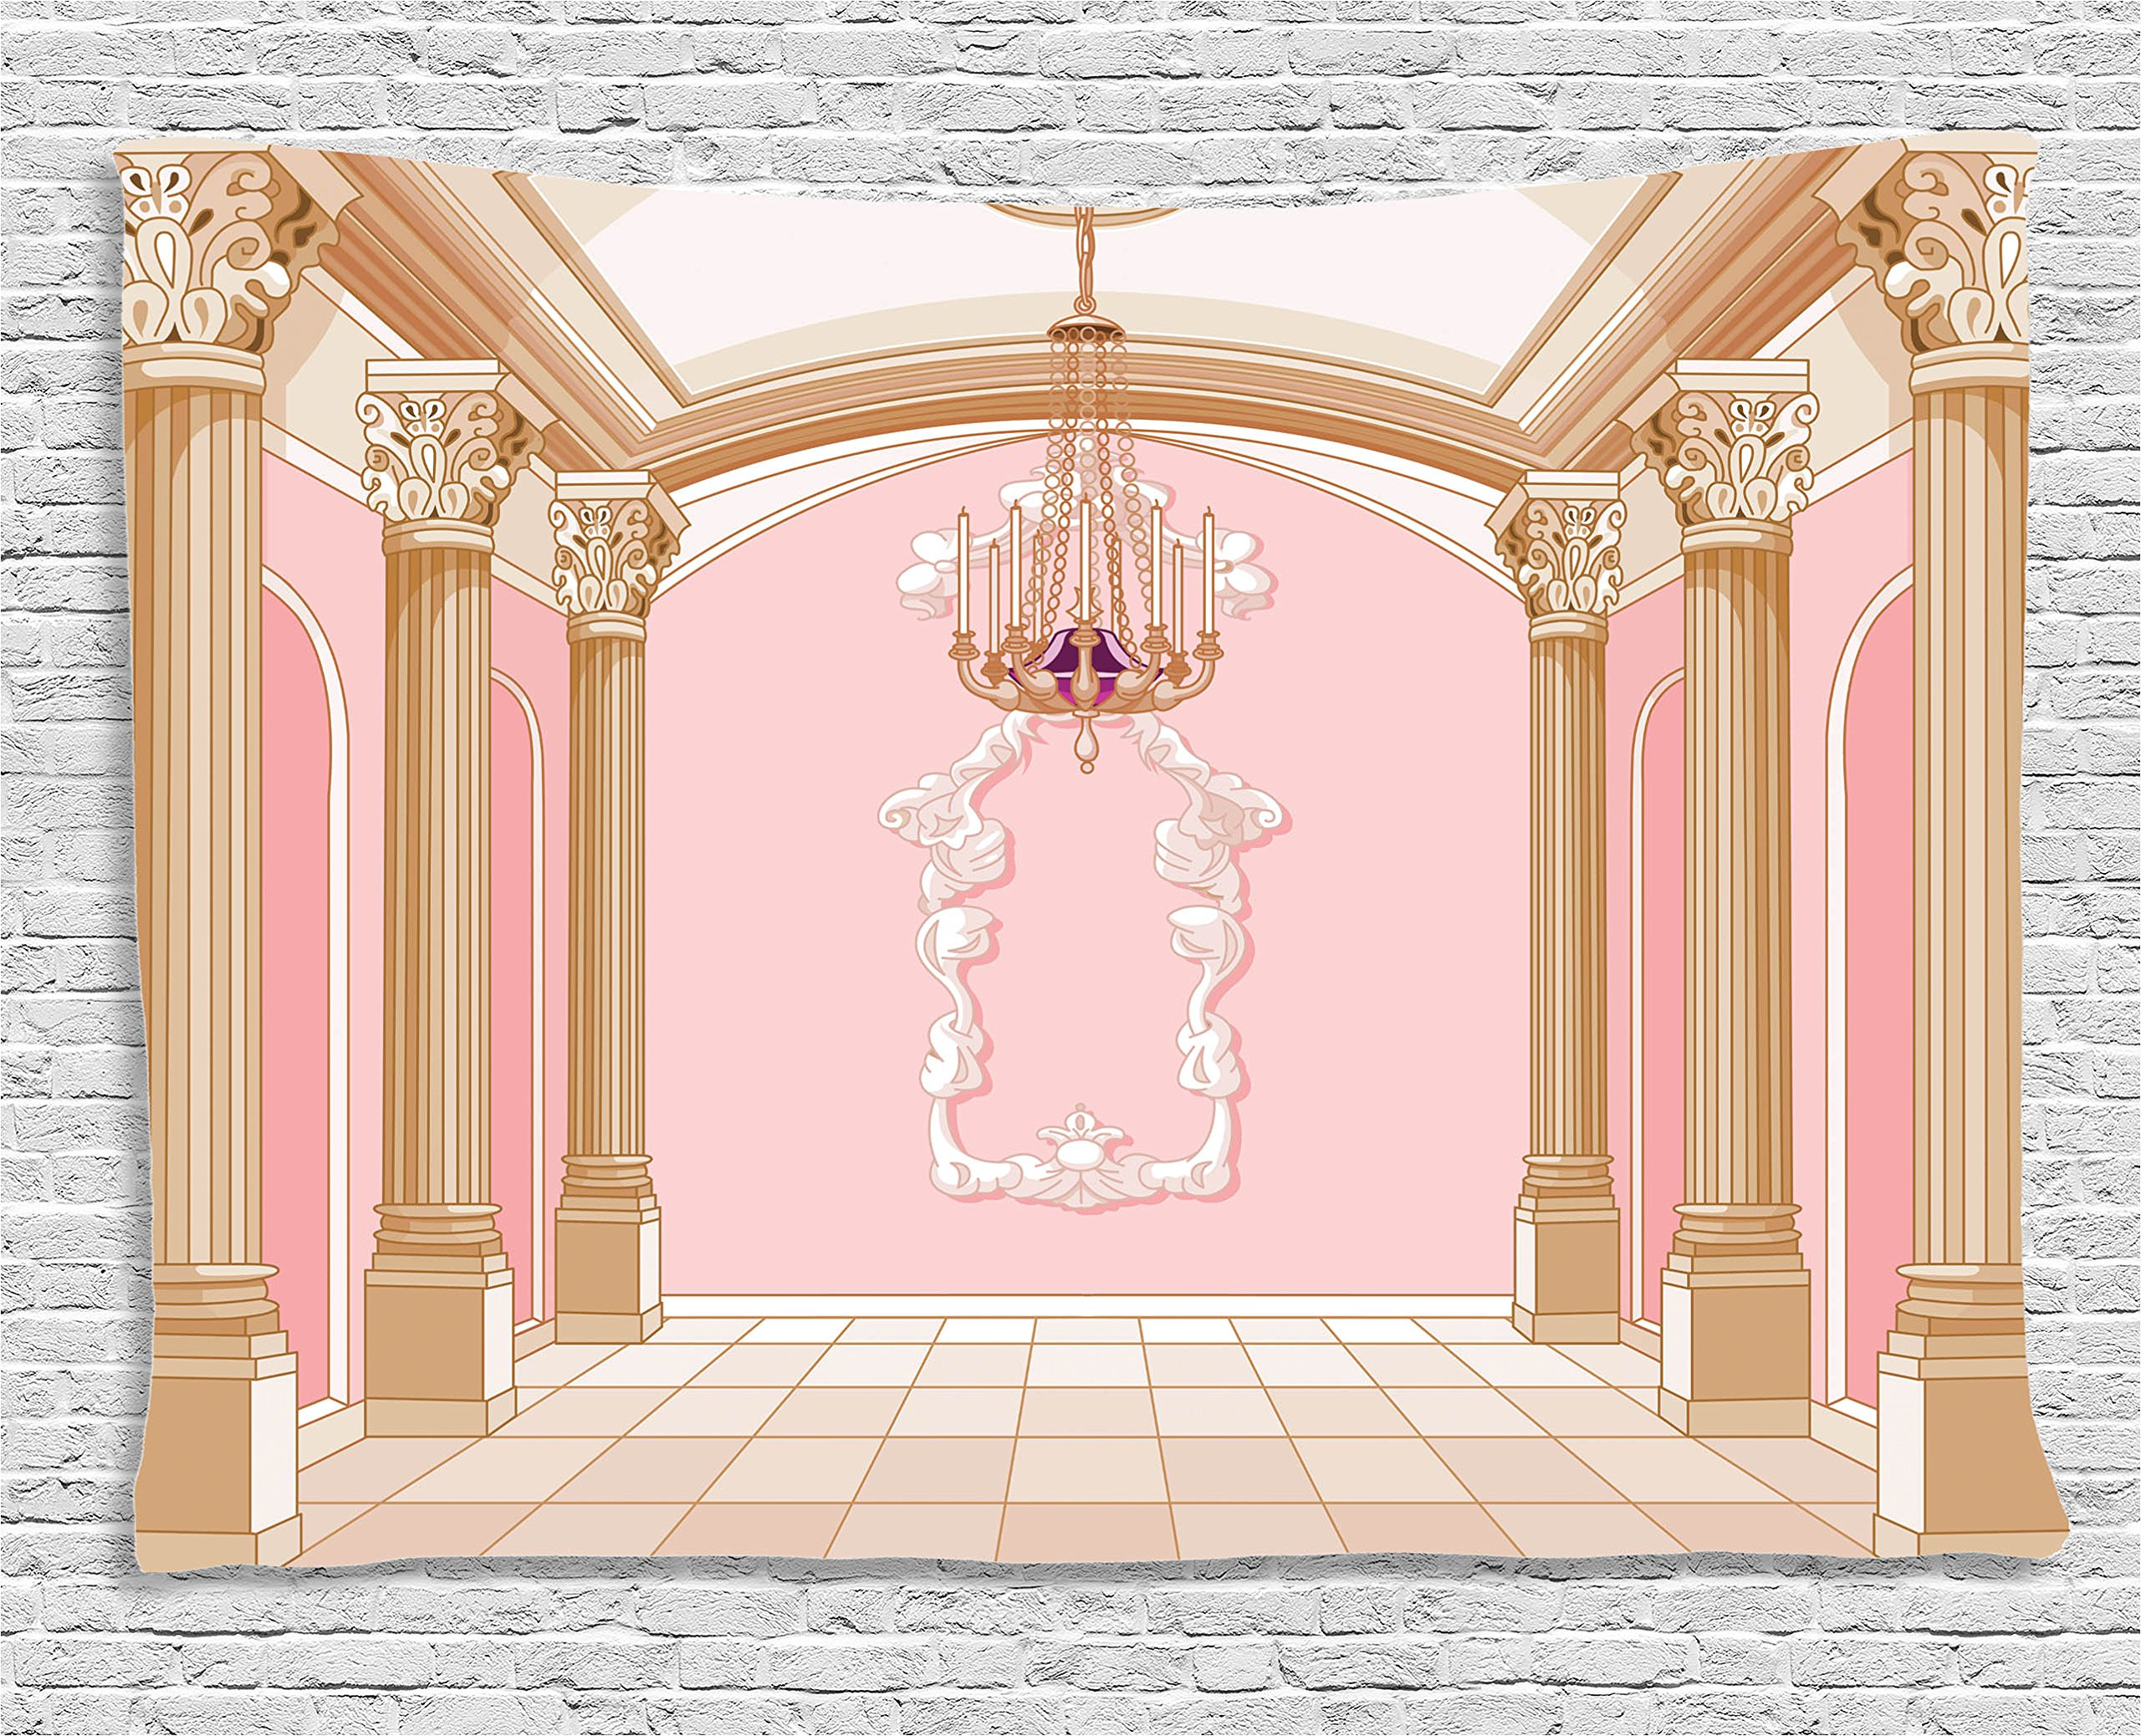 Ambesonne Teen Girls Decor Tapestry, Interior of The Ballroom Magic Castle Chandelier Ceiling Columns Kingdom Print, Wall Hanging for Bedroom Living Room Dorm, 80 W X 60 L, Baby Pink and Cream